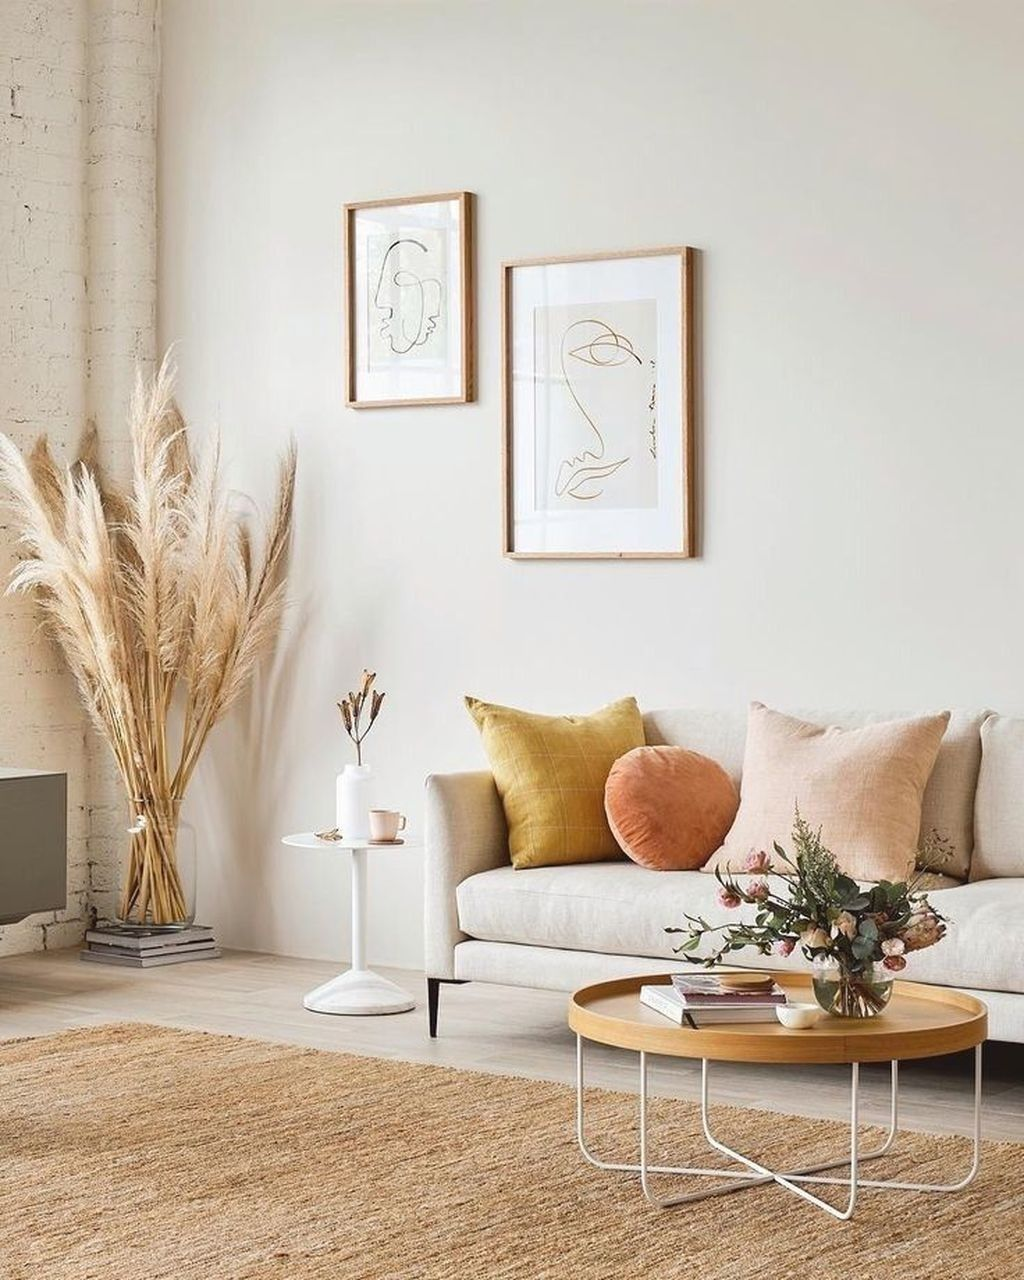 20 Affordable Living Room Decorating Ideas For Home Dining Room Trends Room Wall Colors Elegant Living Room Living room decorating ideas